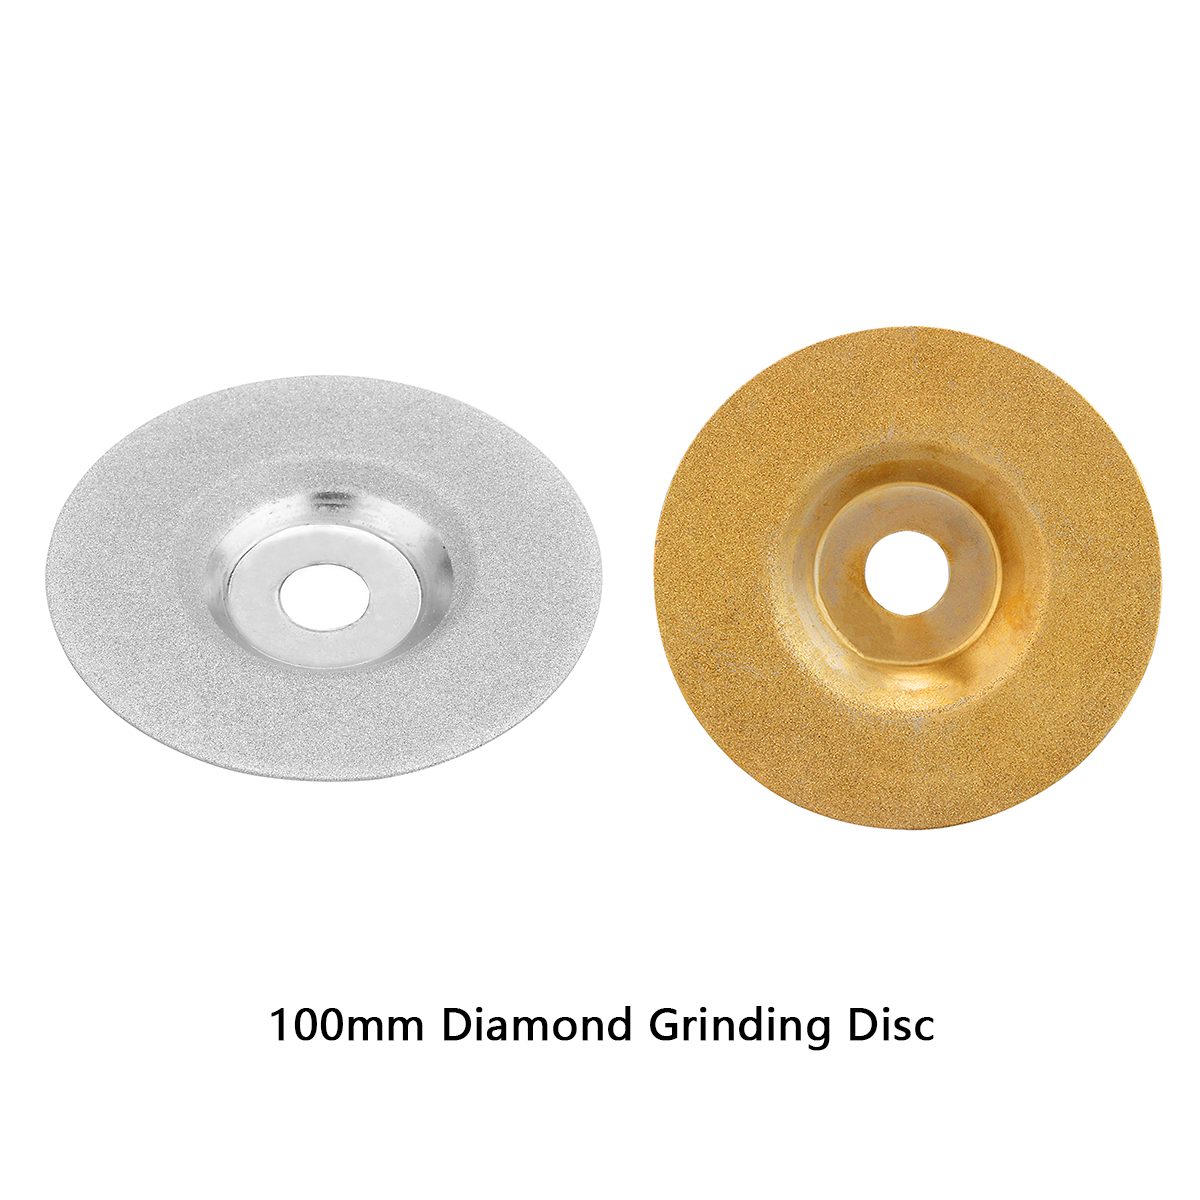 100mm Diamond Grinding Disc Cut Off Discs Wheel Glass Cuttering Saw Blades Rotary Abrasive Tools Gold/Silver